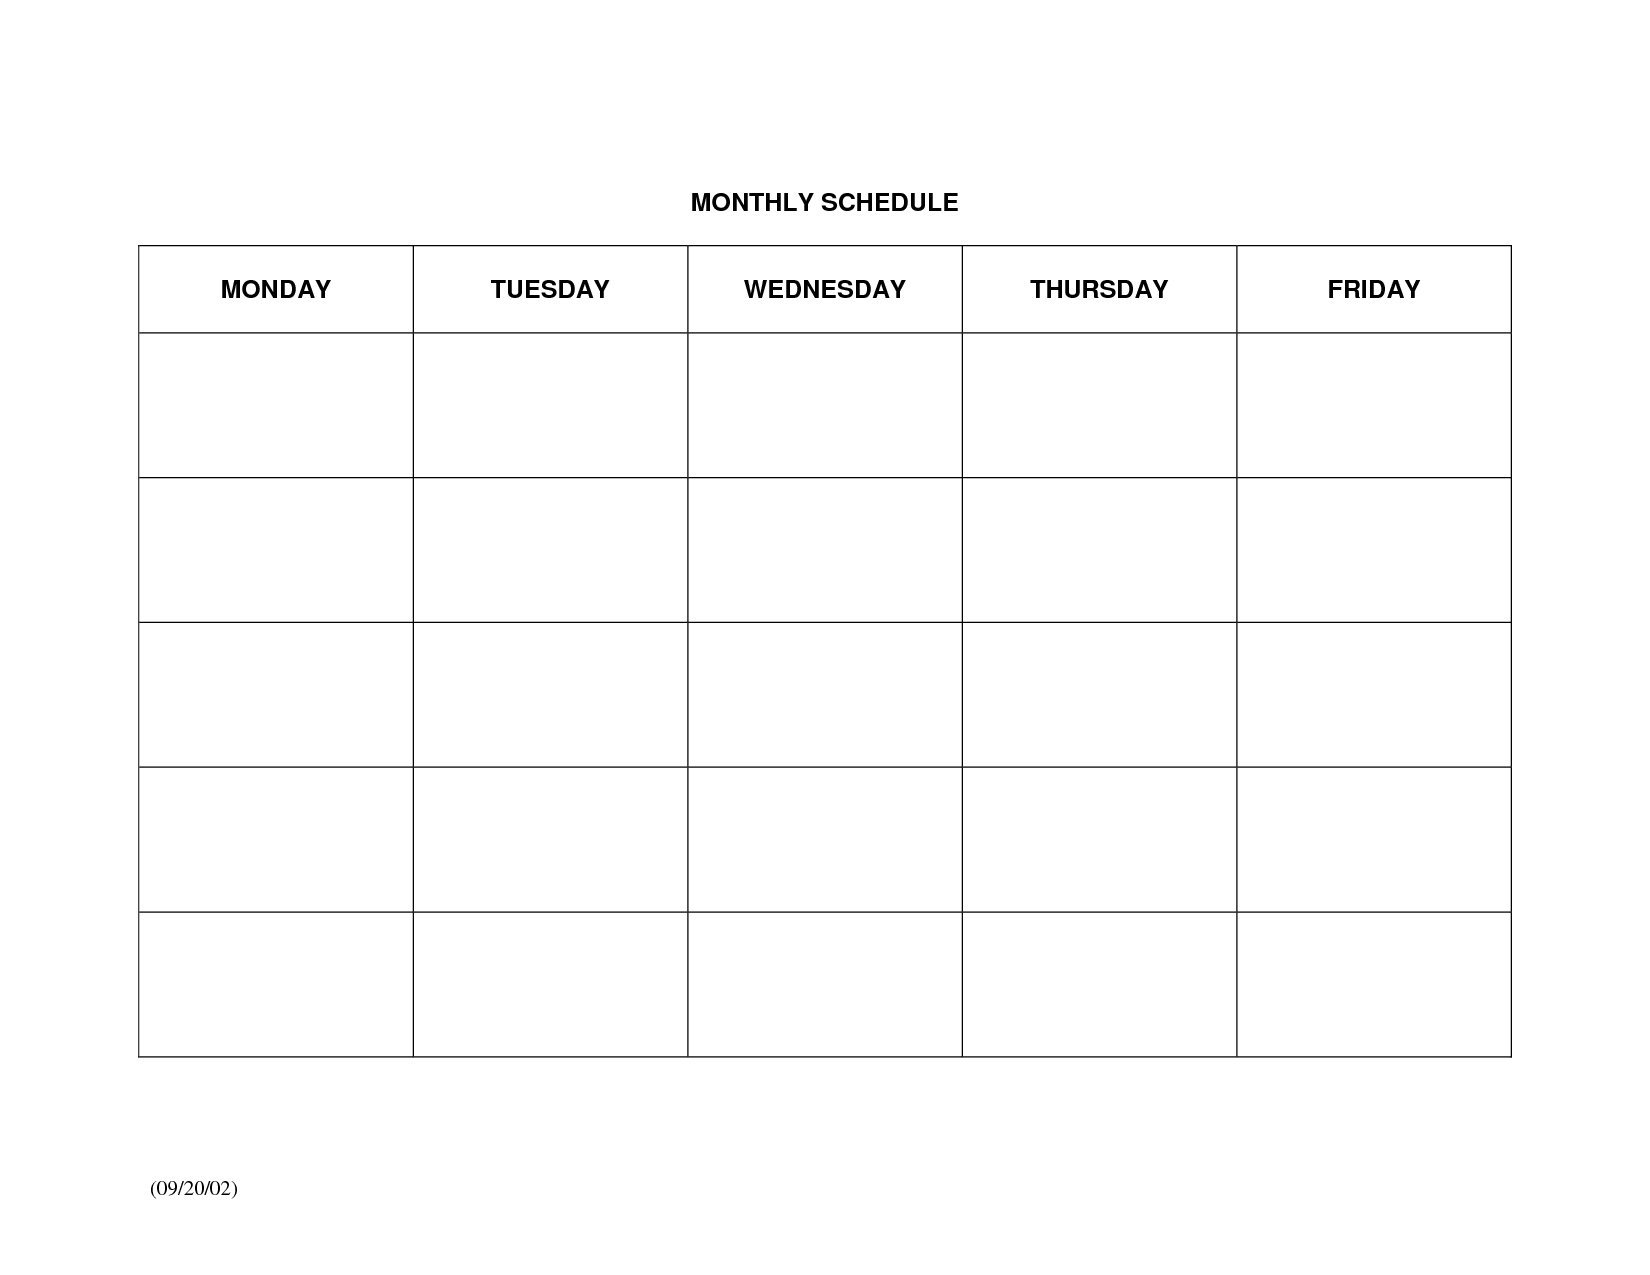 Monthly-Schedule-Calendar-Template-Printable-Large Calendar Template Schedule Monthly